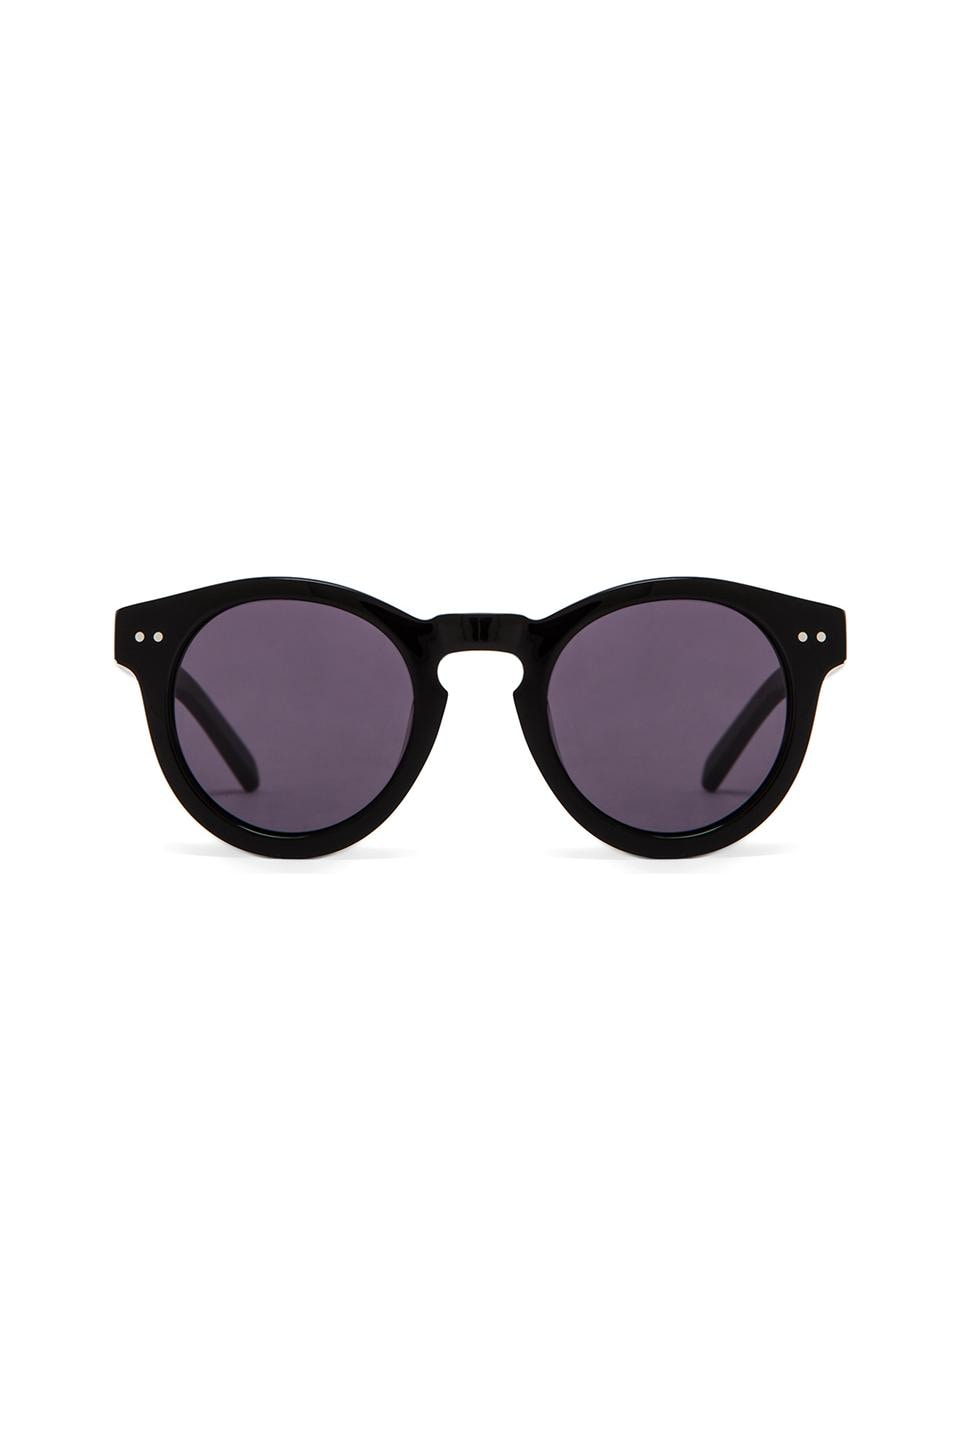 House of Harlow 1960 House of Harlow Carmen Sunglasses in Black